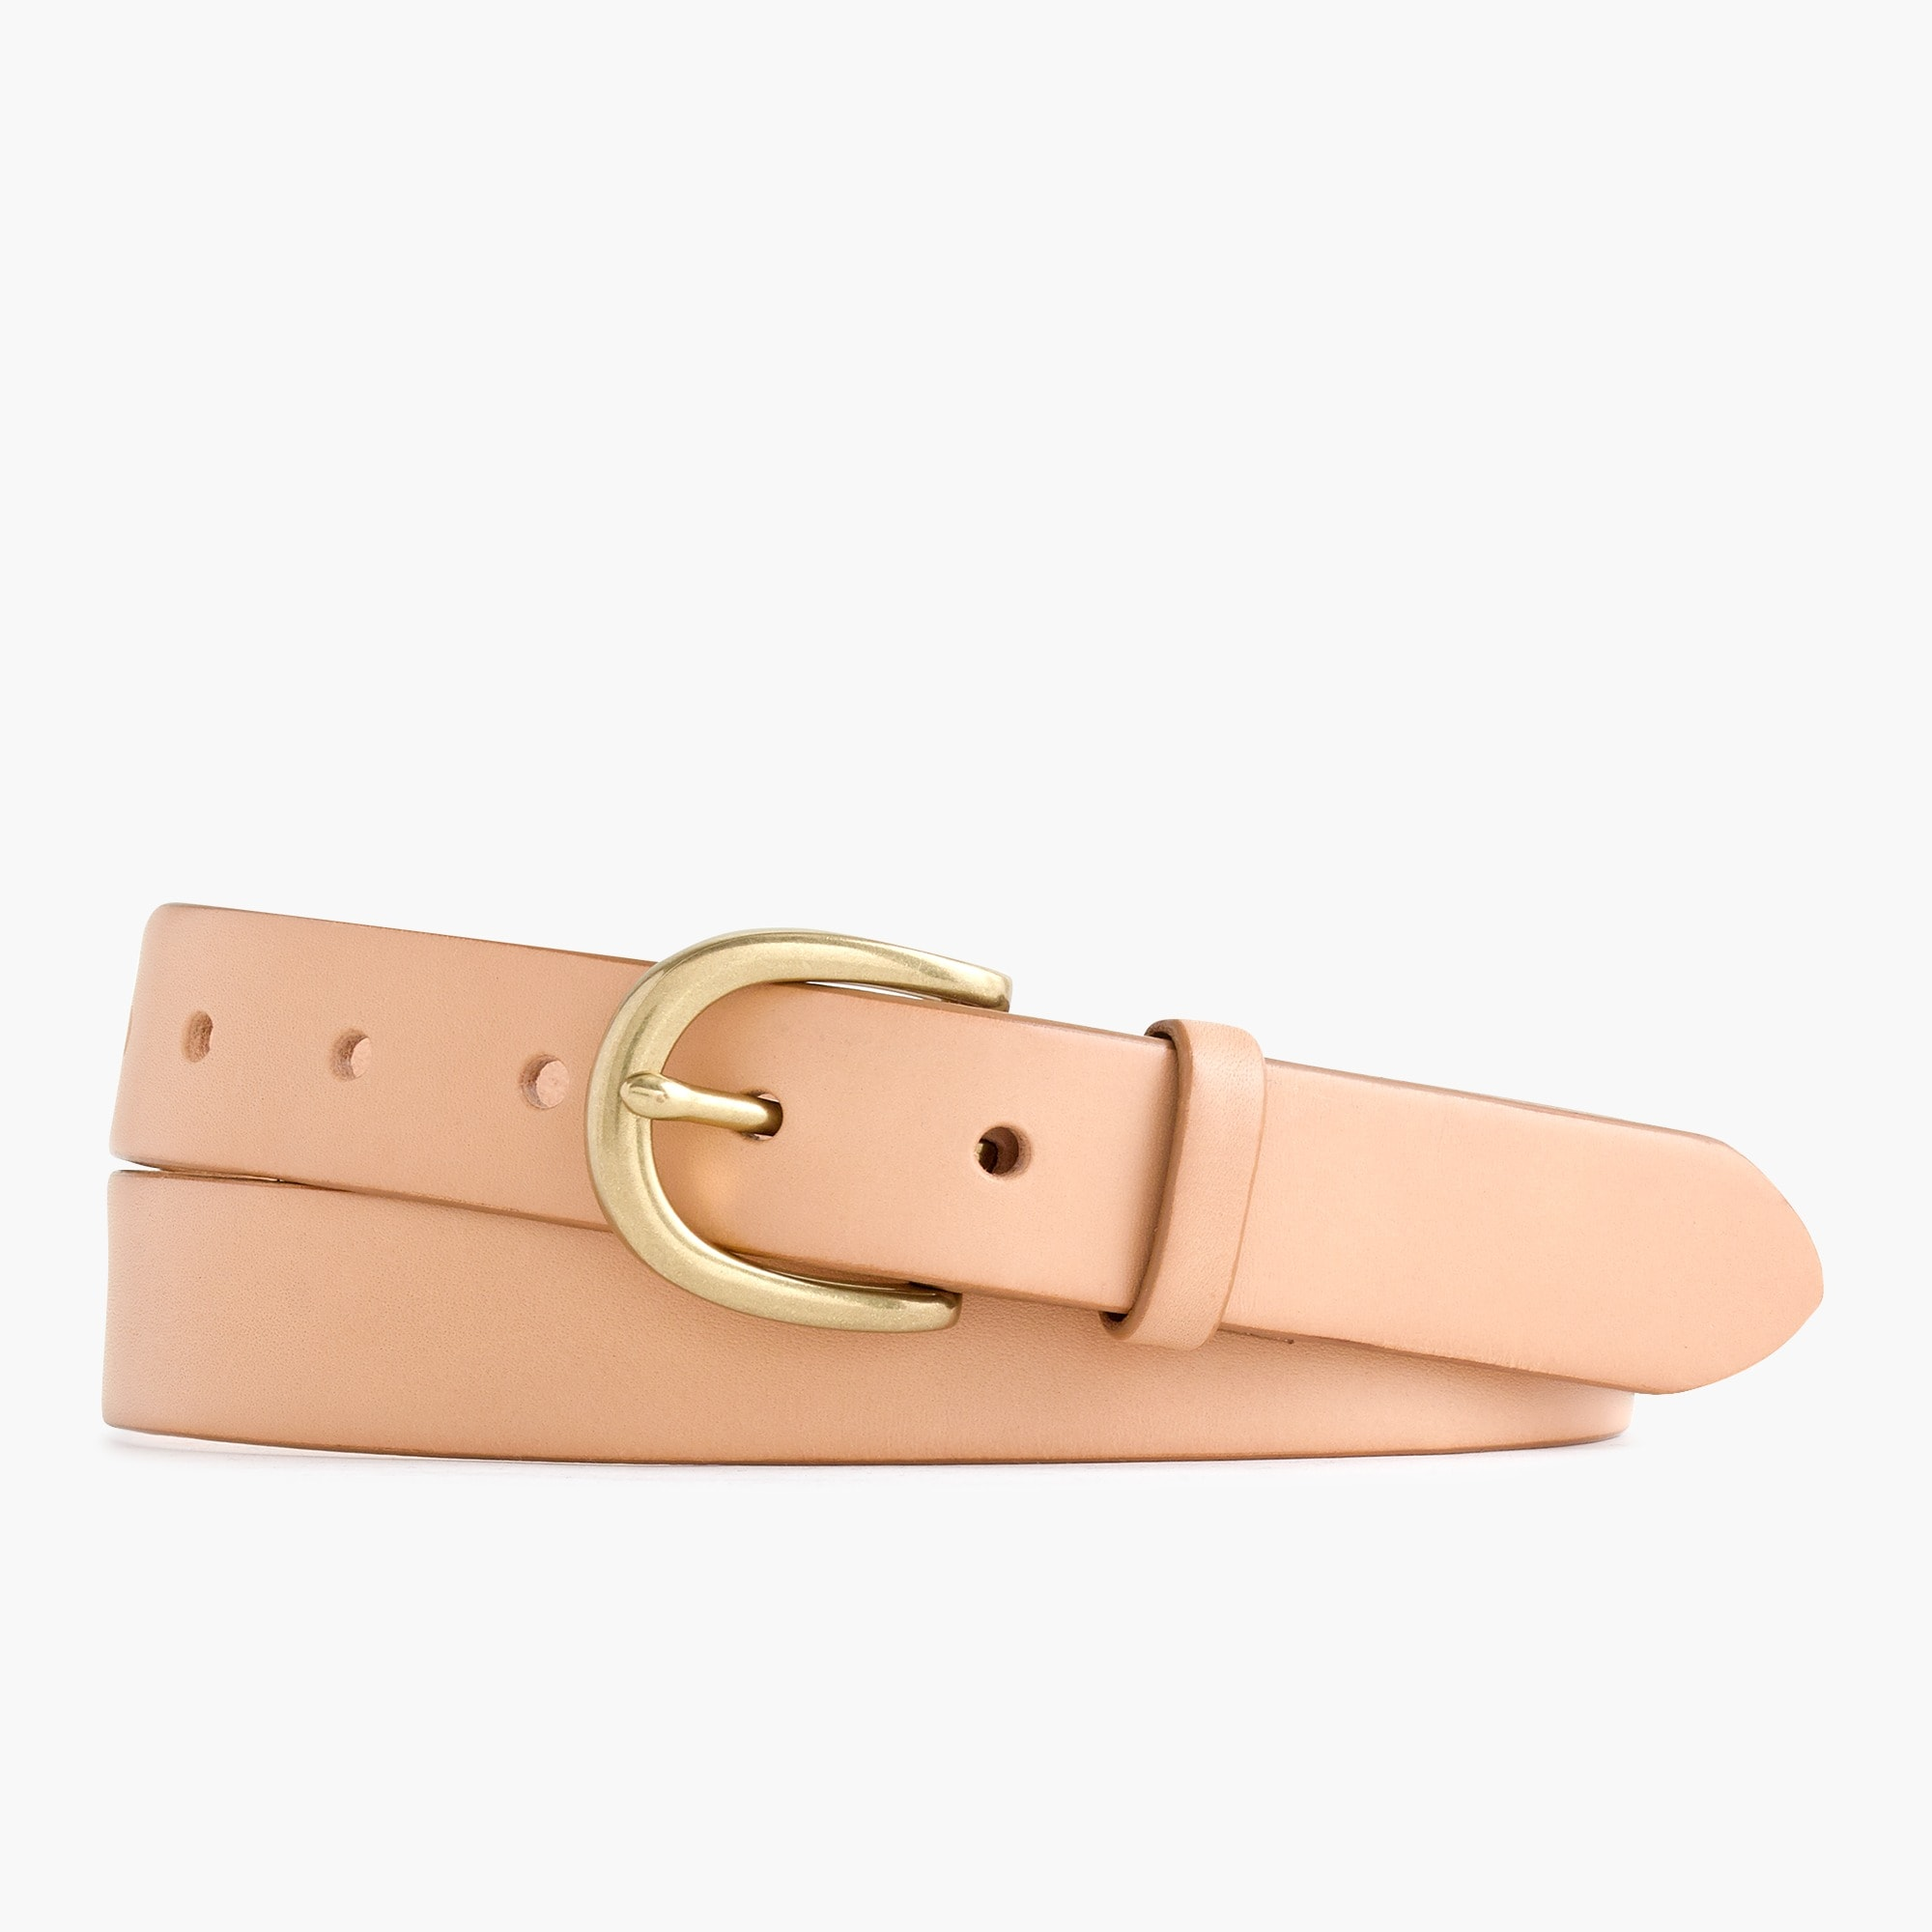 Image 1 for Classic leather belt in tan